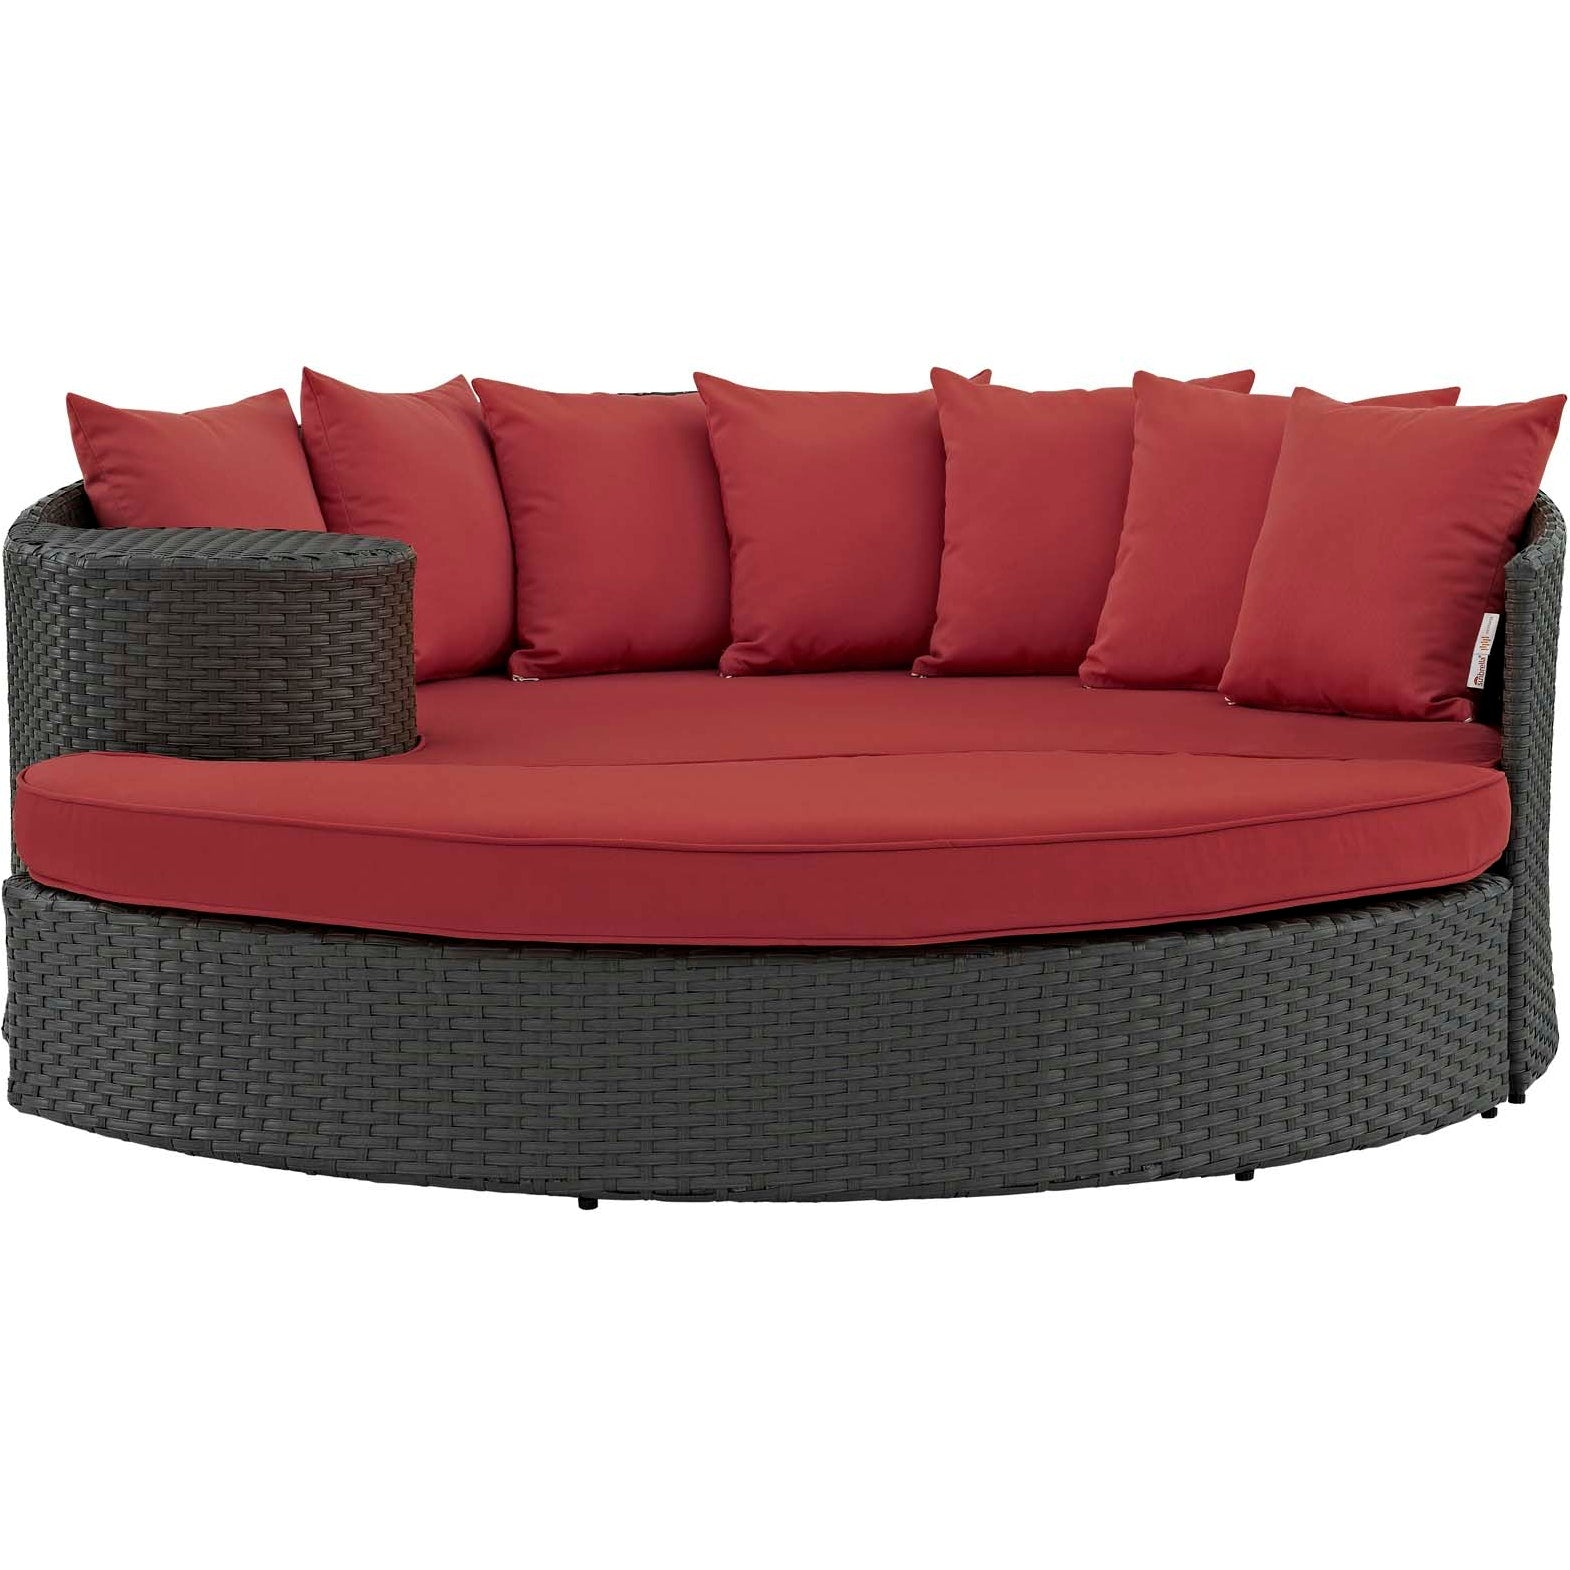 Sojourn Outdoor Patio Sunbrella® Daybed - Canvas Red